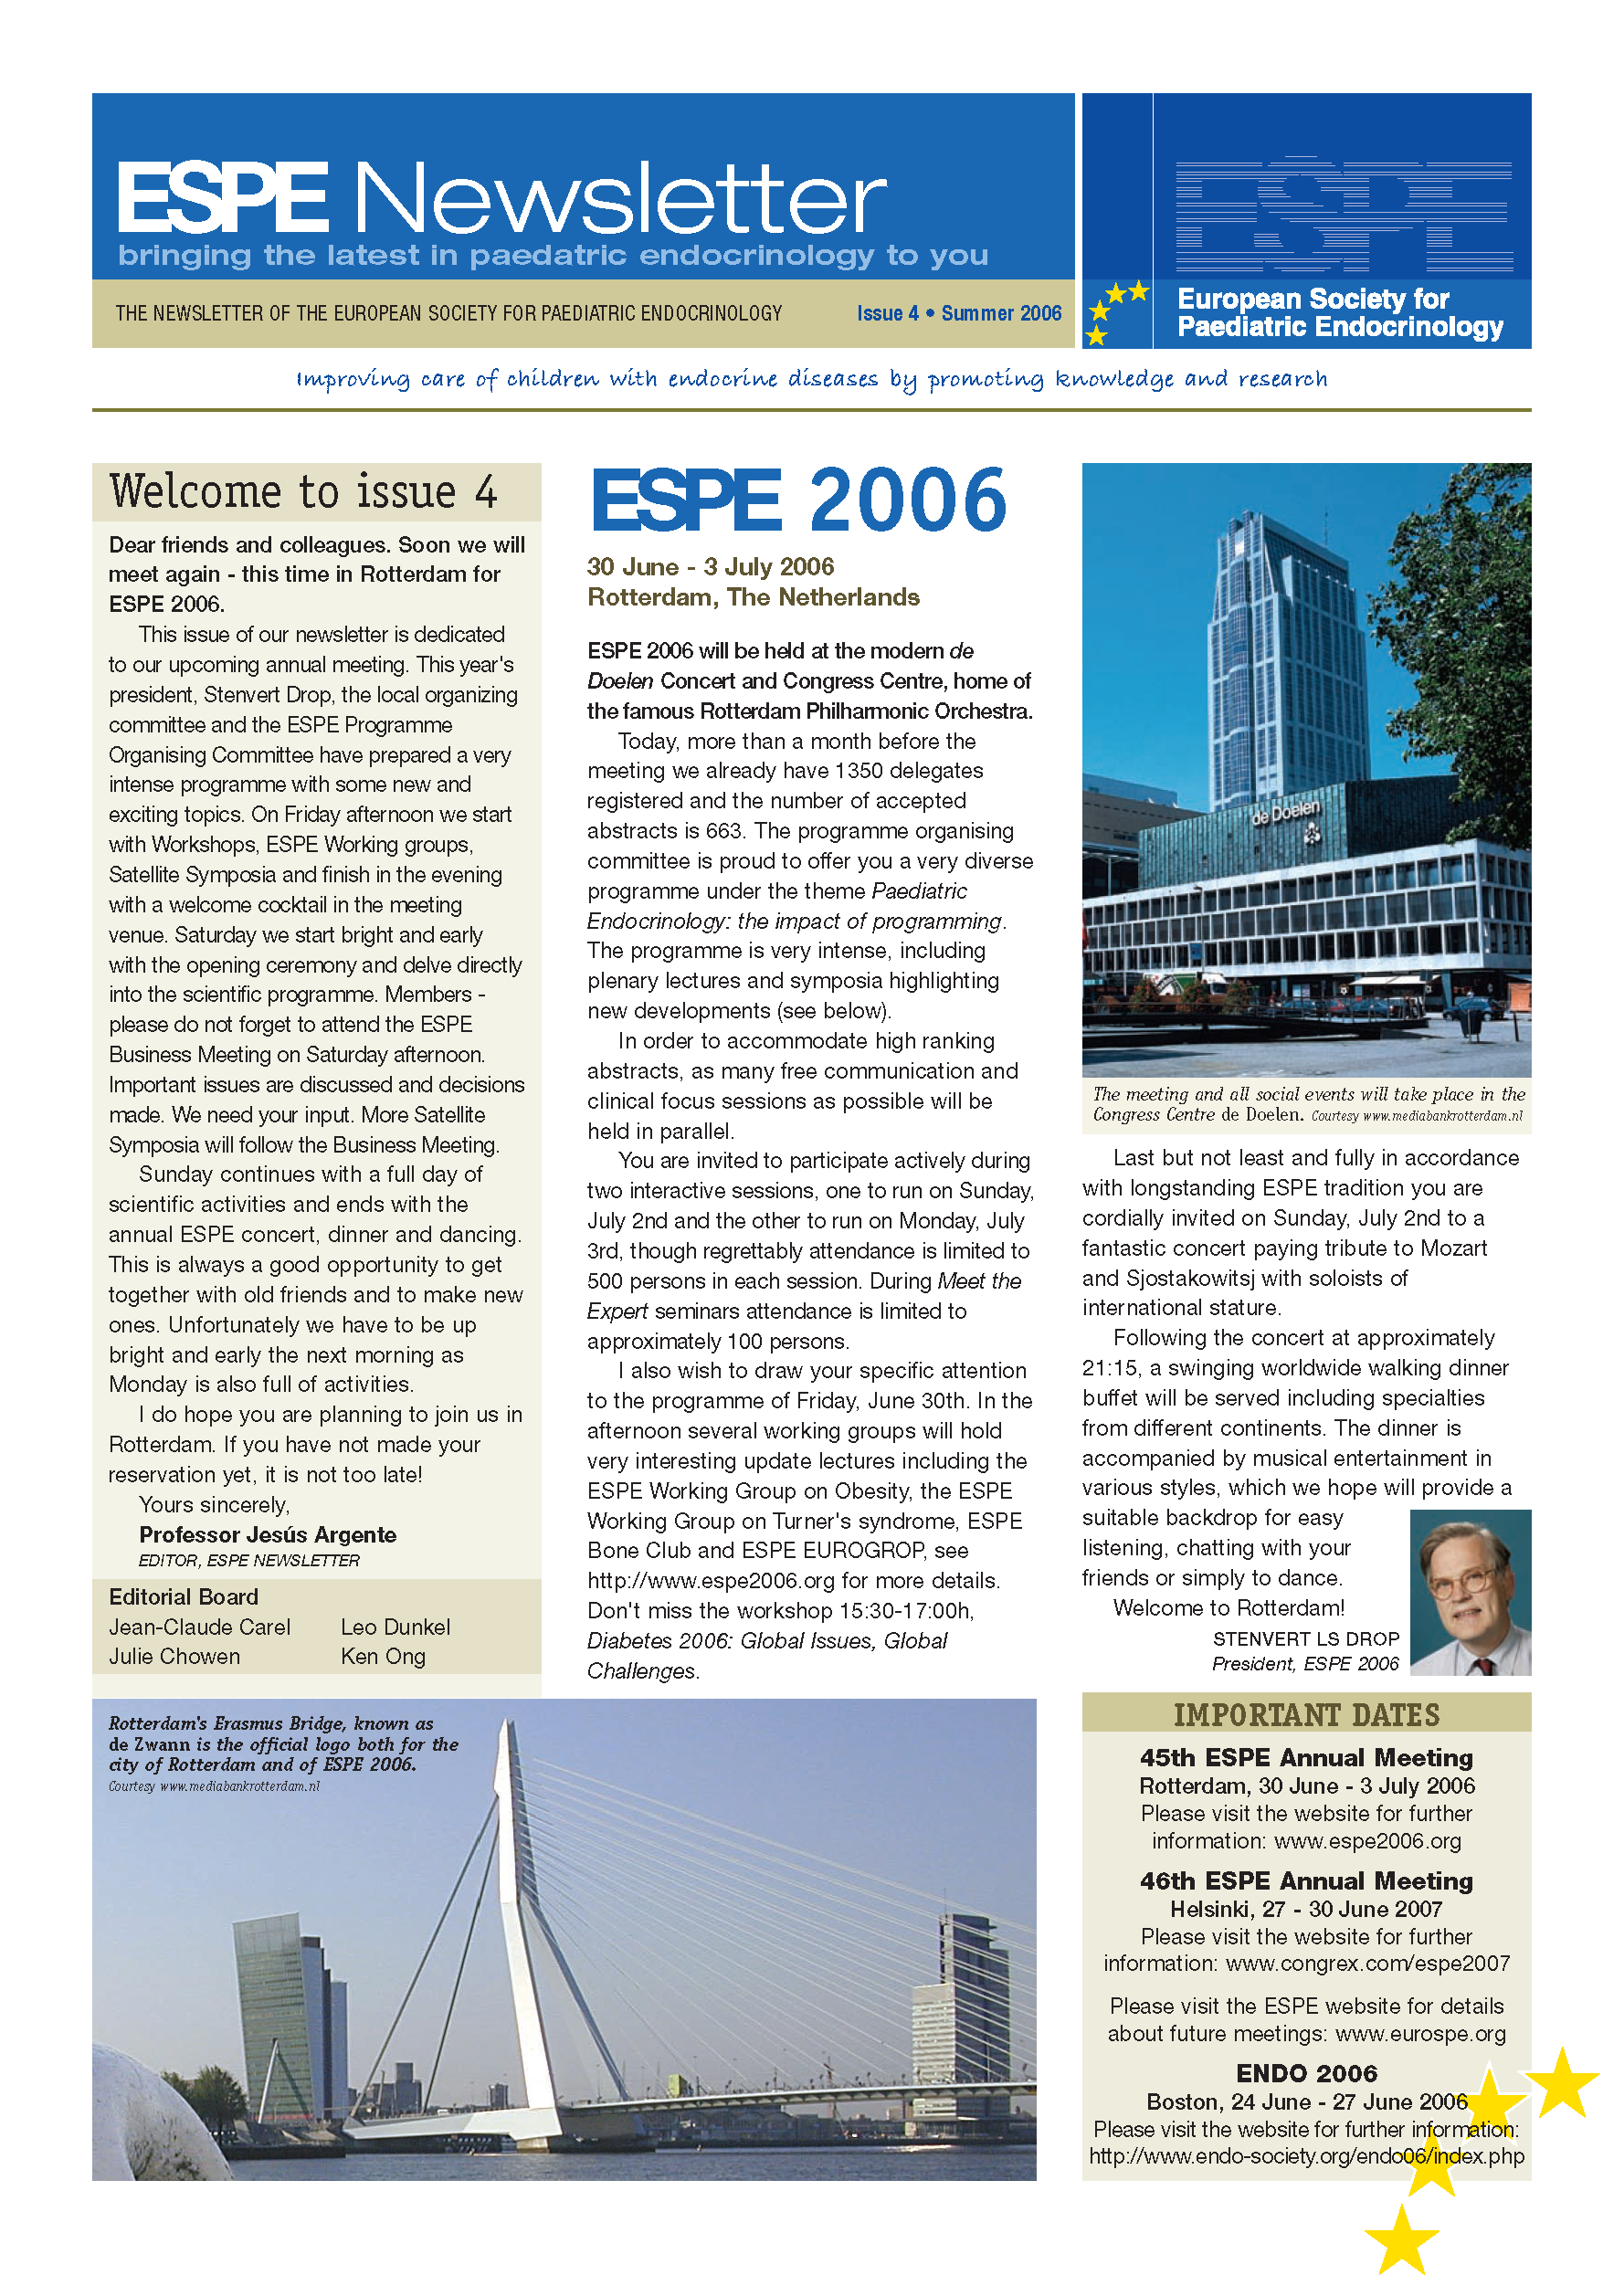 Issue 4 - Summer 2006